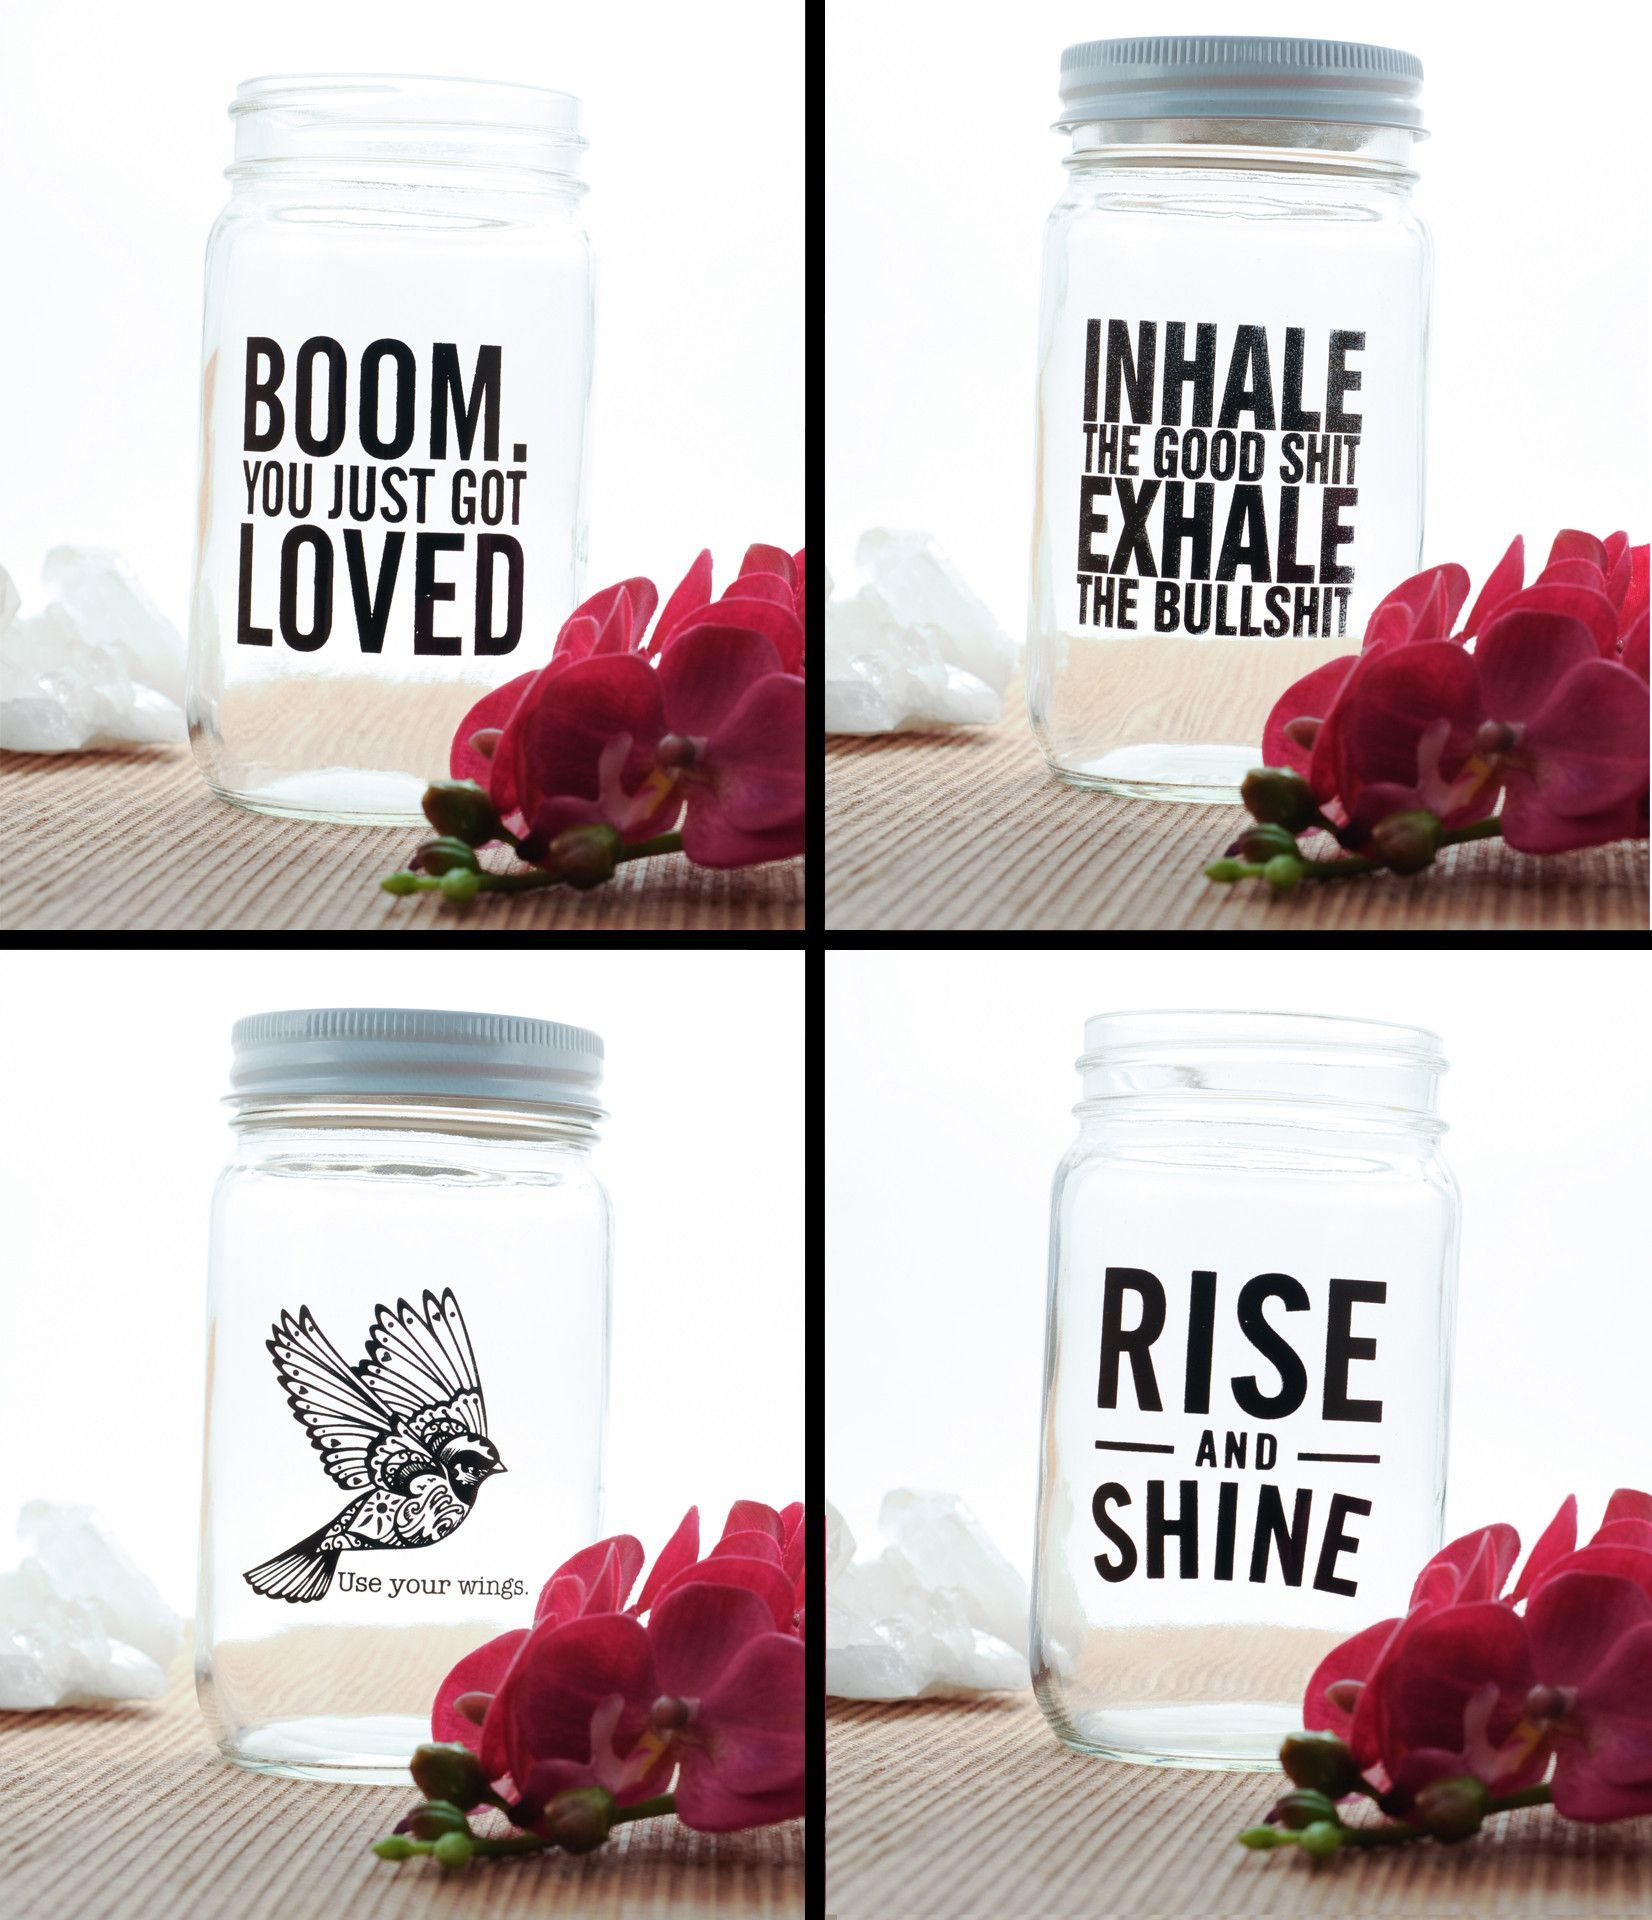 Set of 4 Mason Jars - Boom You Just Got Loved   Inhale The Good Shit, Exhale The Bullshit   Rise And Shine   Use Your Wings from MyBohemiaJewelry